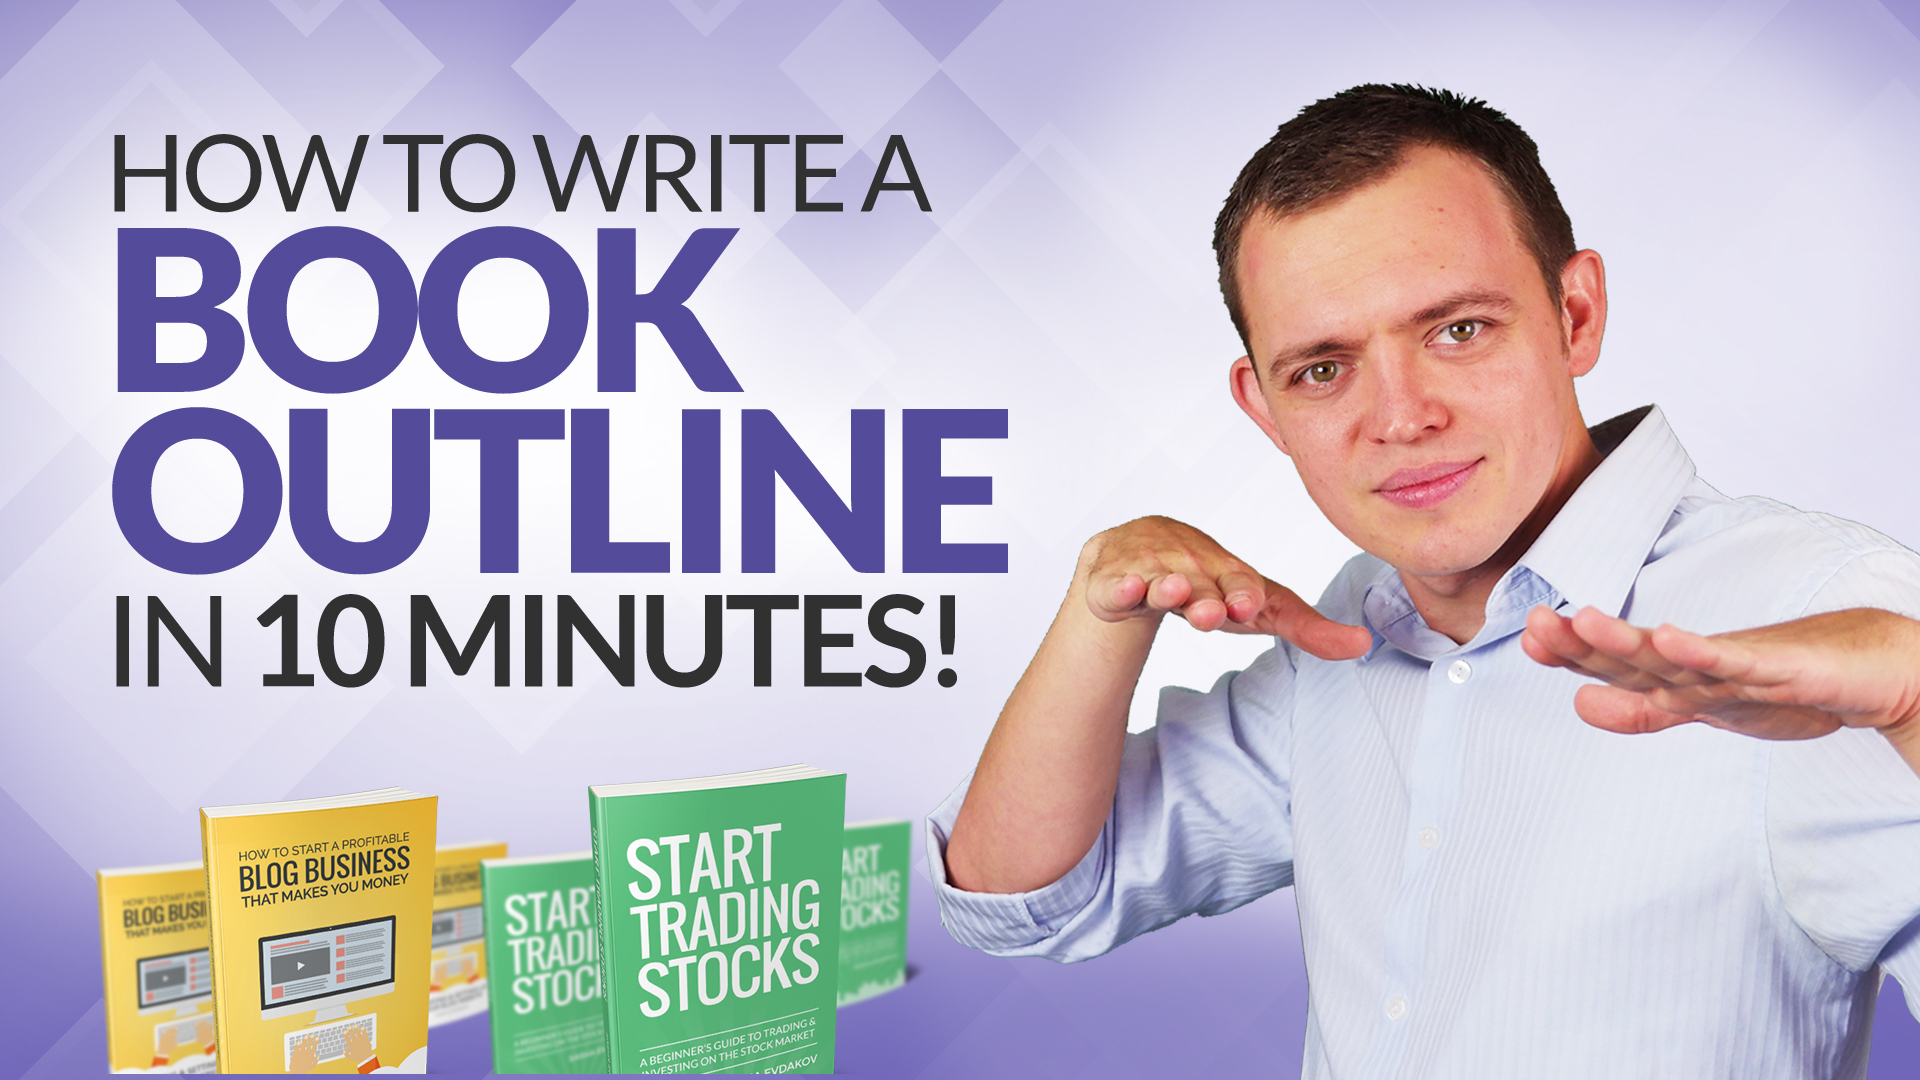 How to Write an eBook Outline in 10 minutes #BSI 15